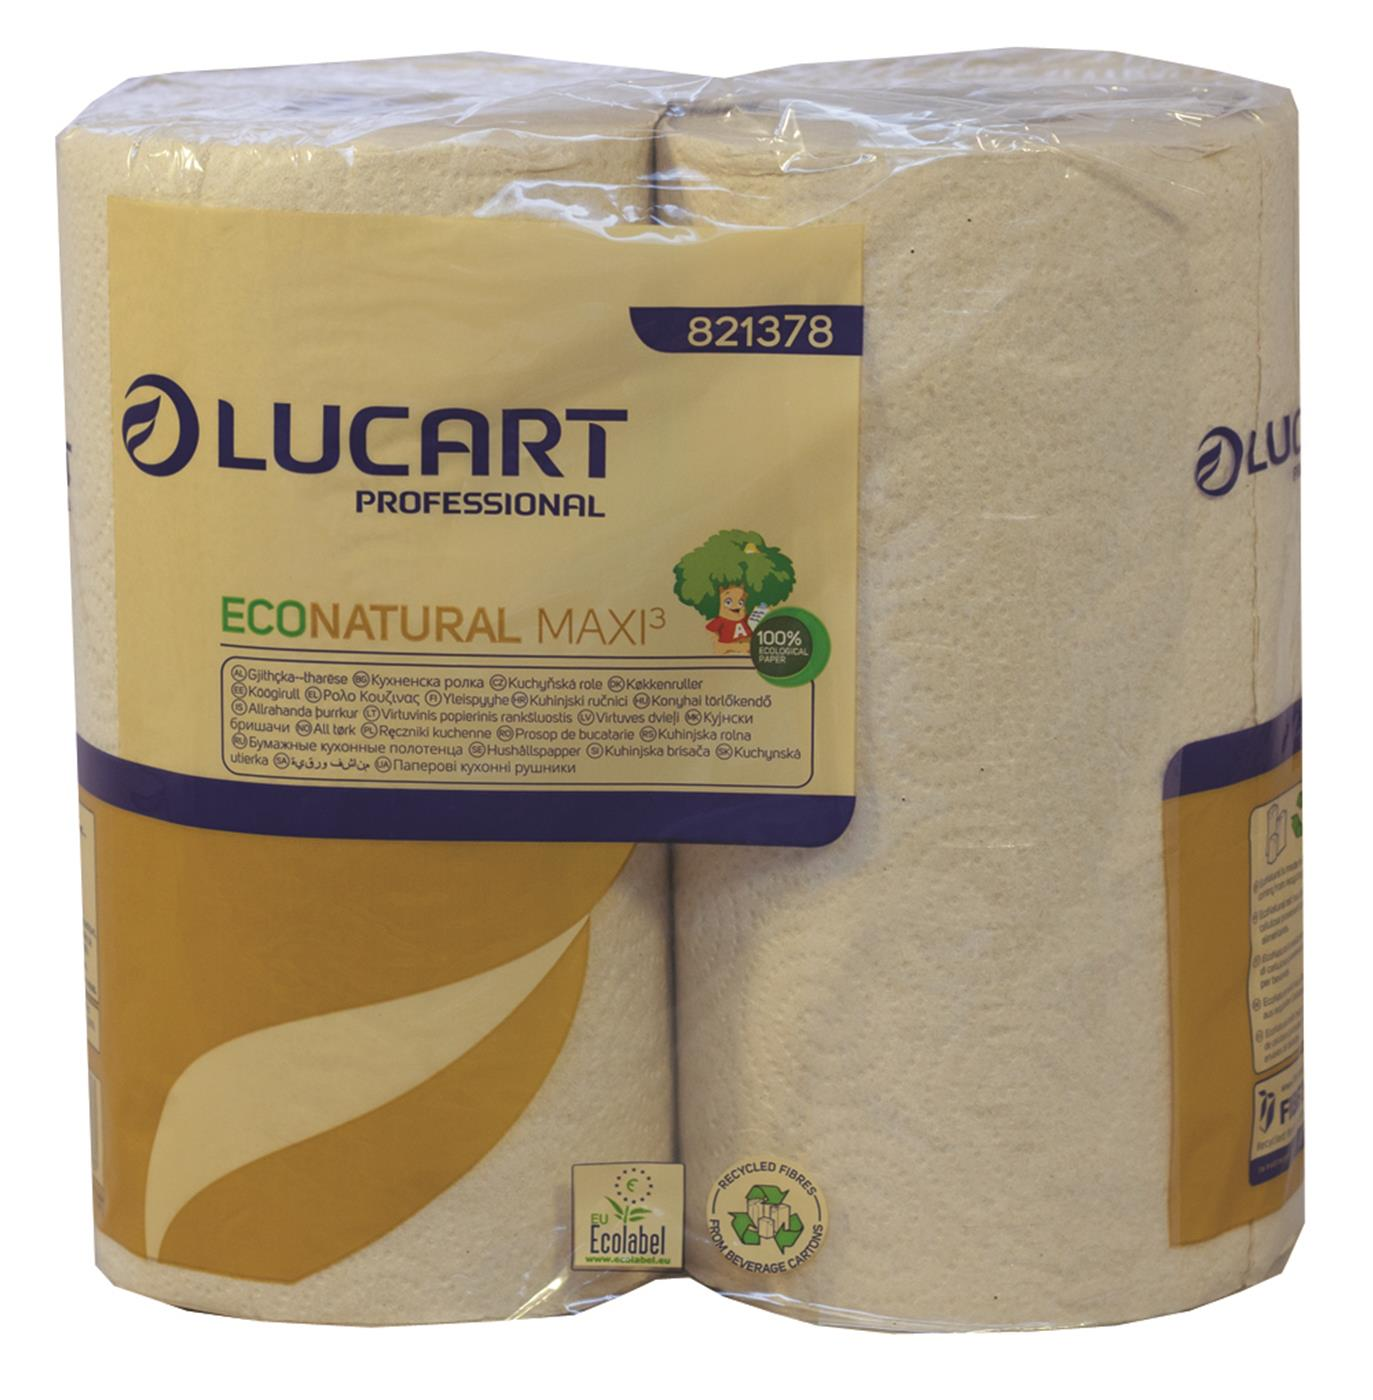 Lucart EcoNatural Maxi Kitchen Rolls